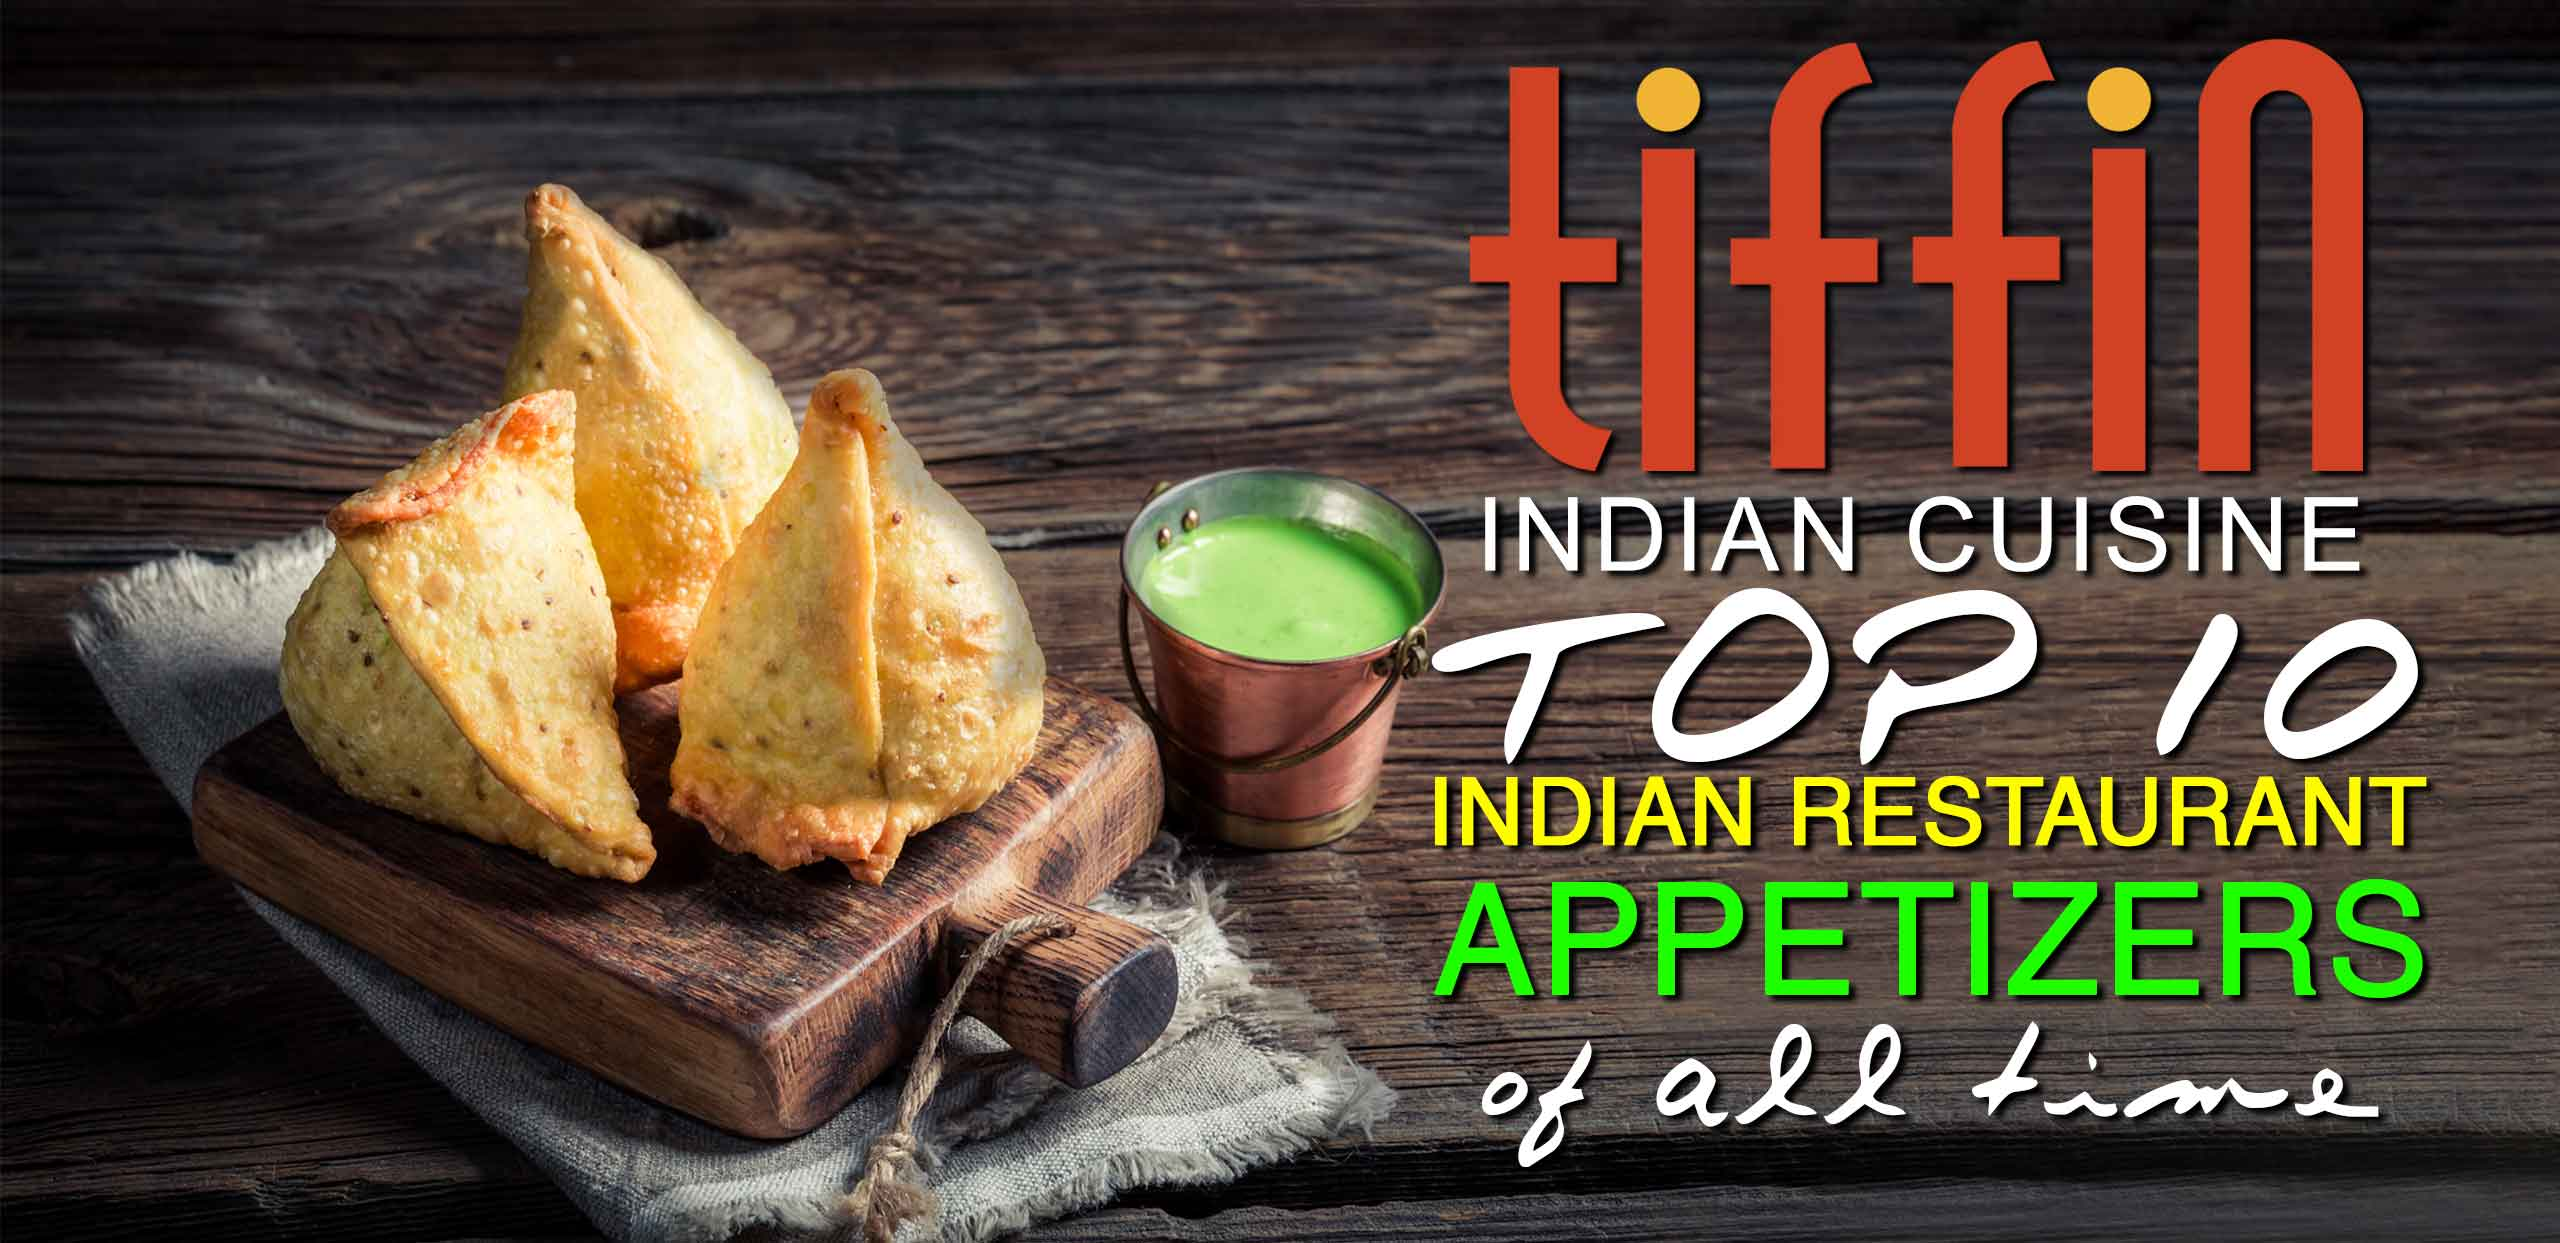 Top 10 Indian food Delivery Restaurant Appetizers Cherry Hill Township Camden County New Jersey Indian Food Blog by Tiffin Indian Cuisine East Hanover